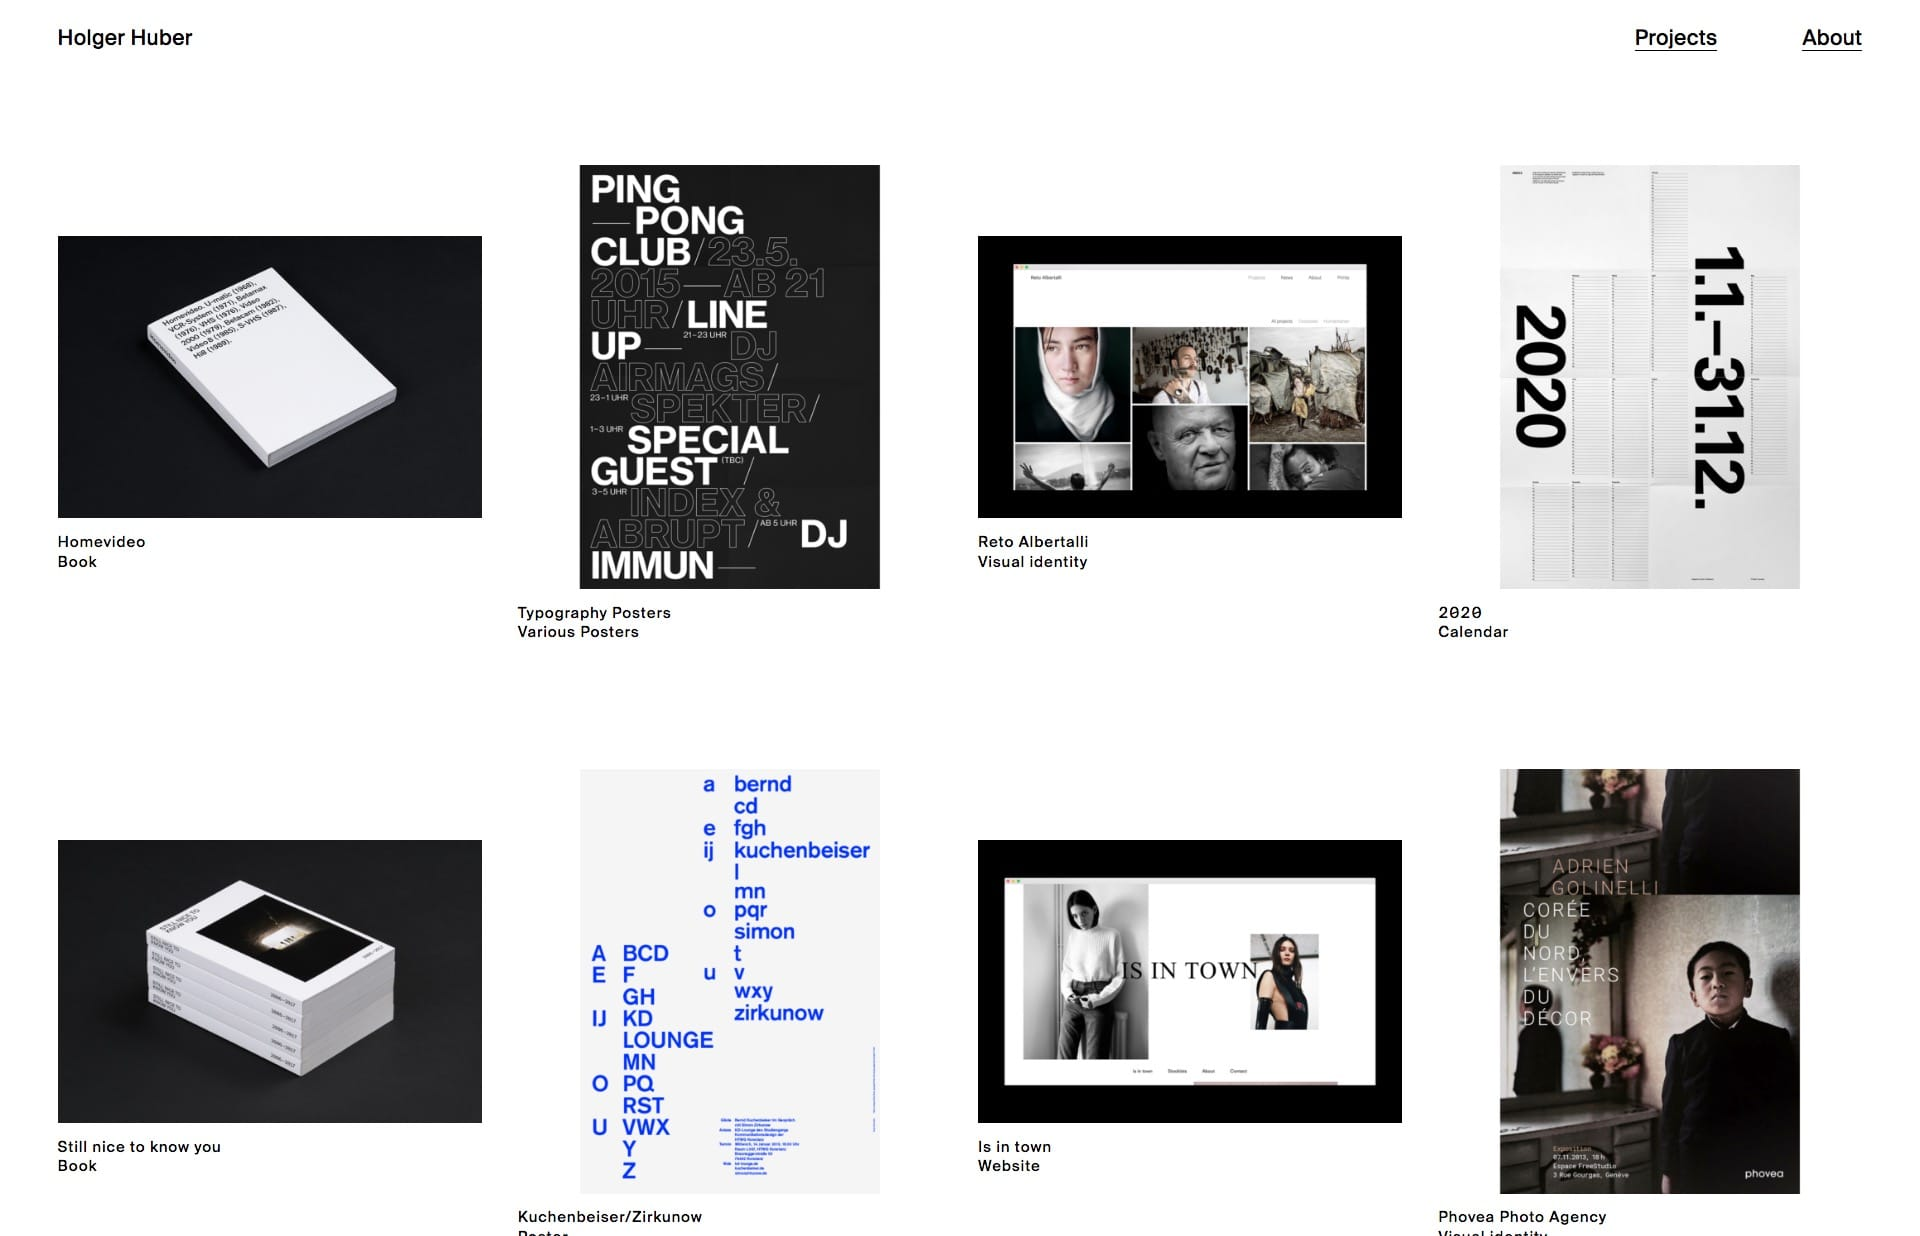 Screenshot of the website Holger Huber, featured on The Gallery, a curated collection of minimal websites